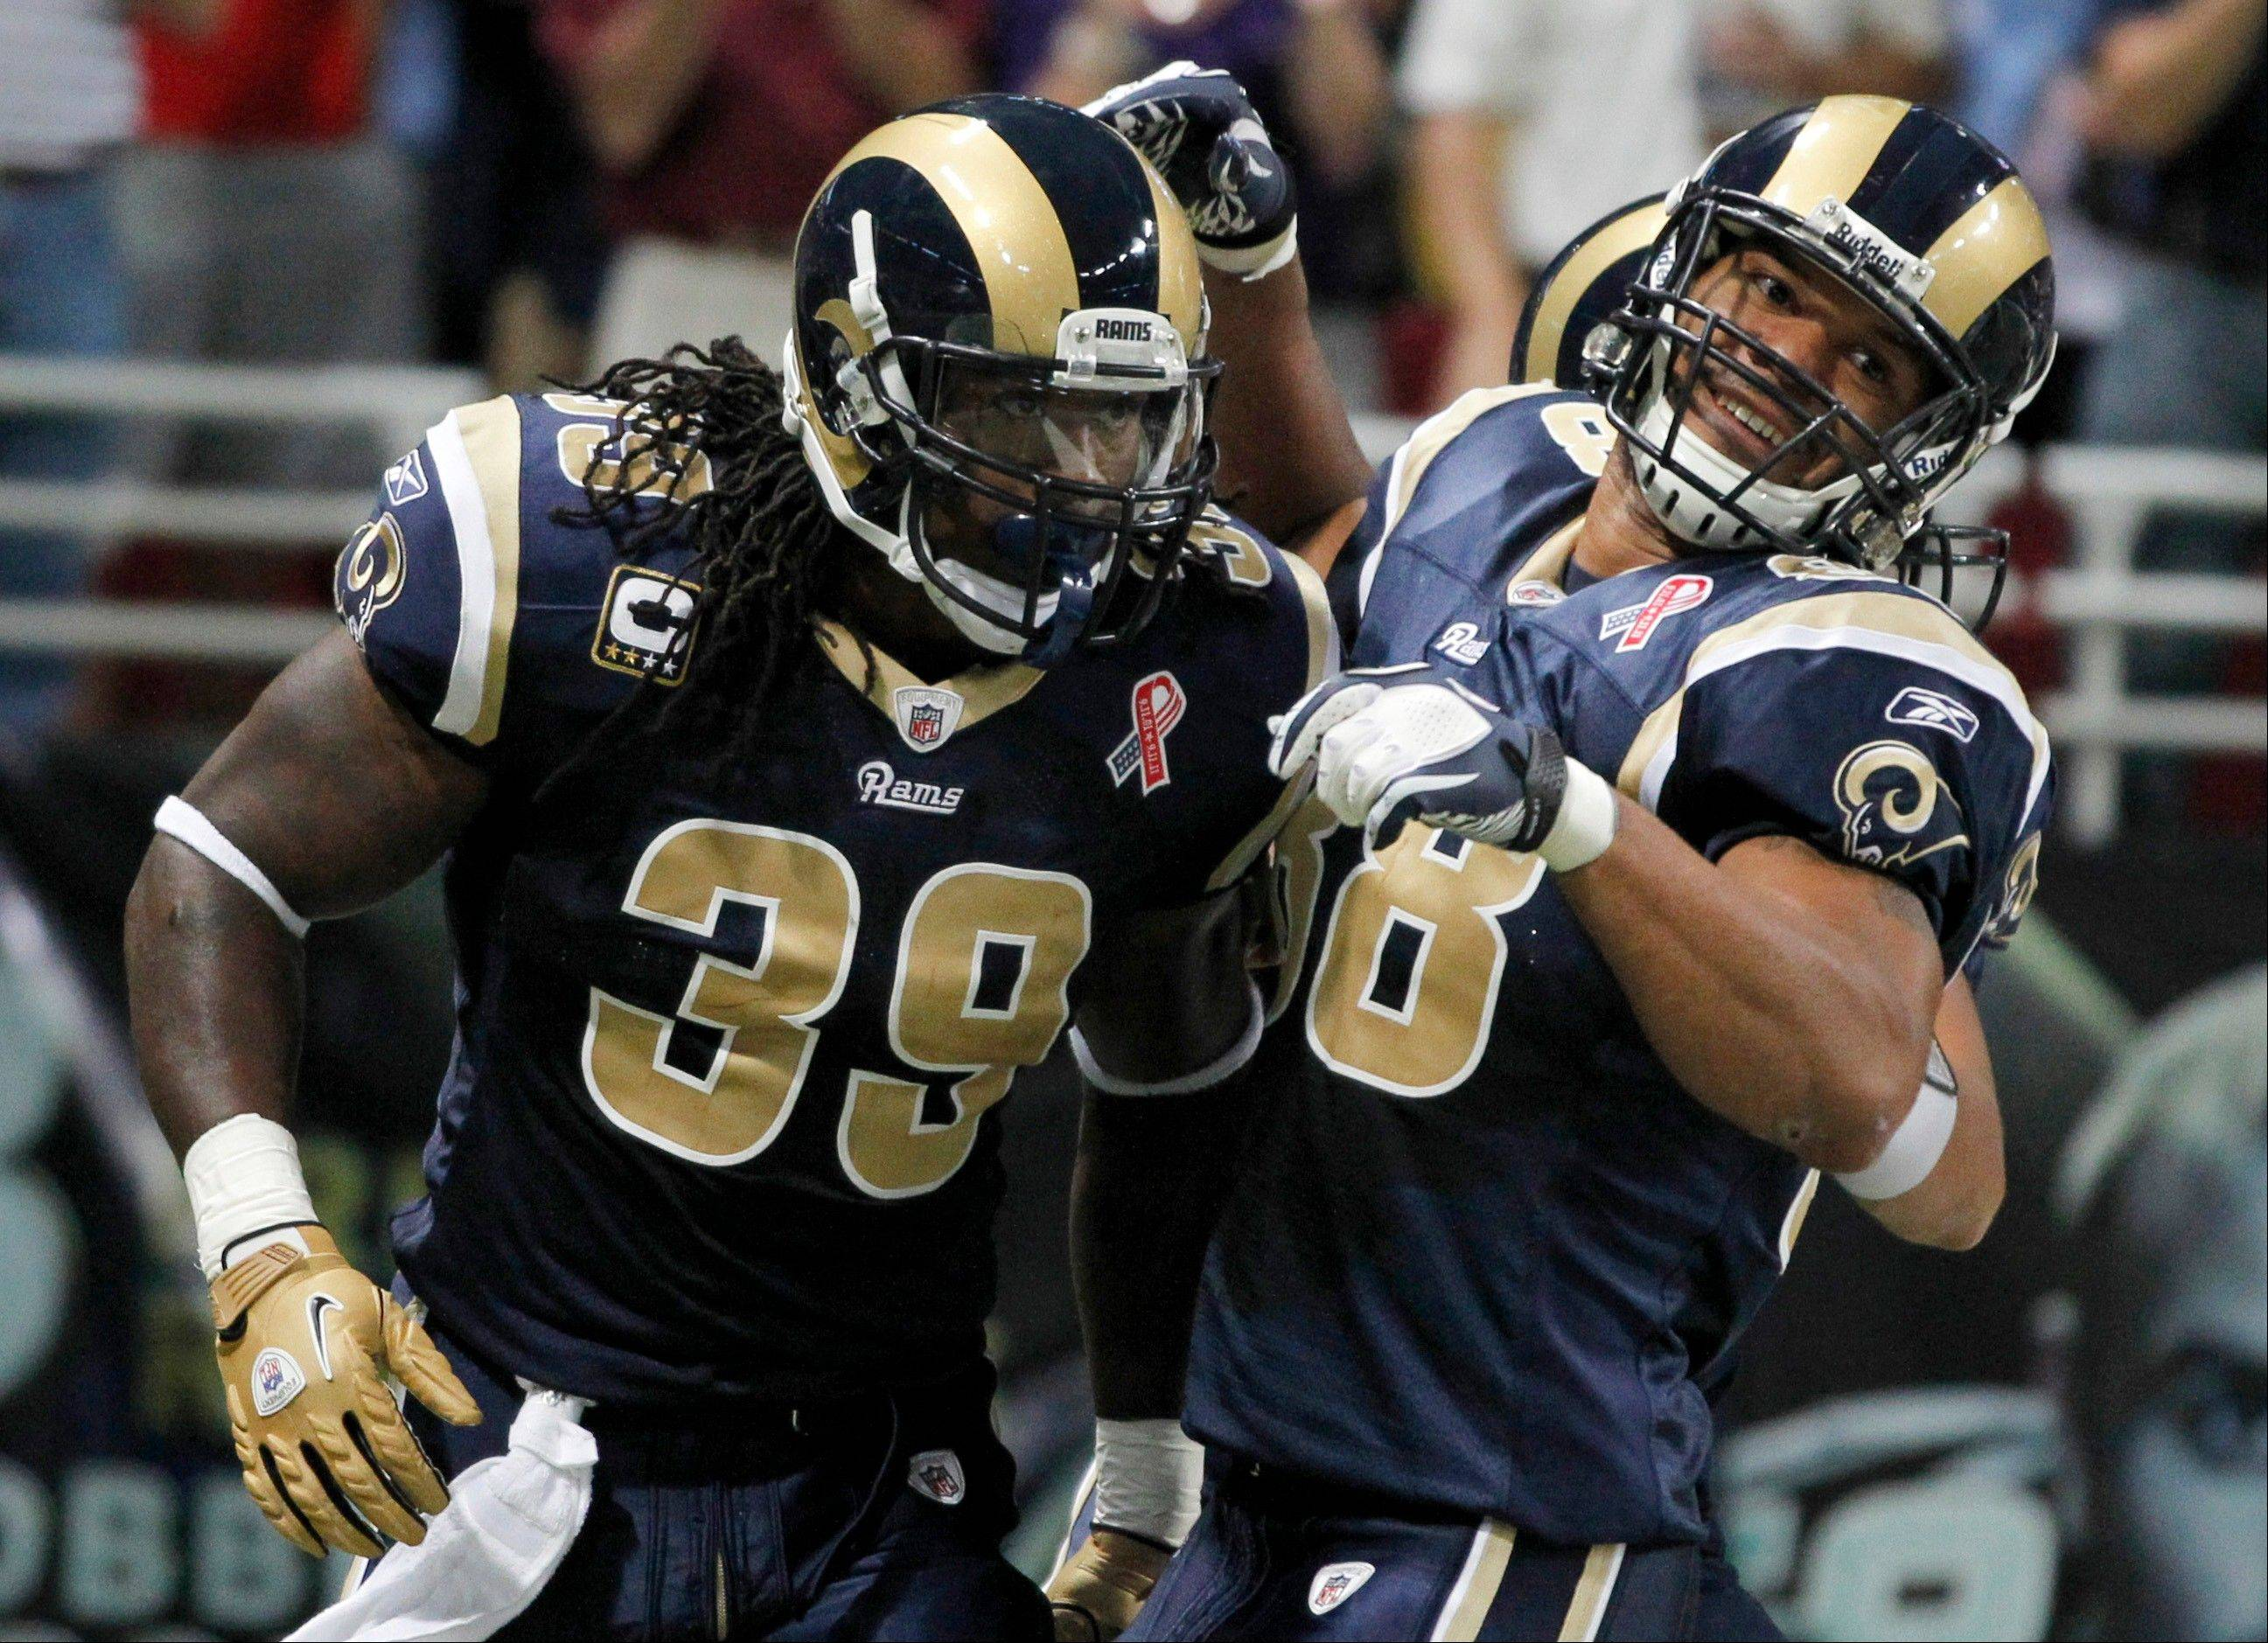 St. Louis Rams running back Steven Jackson, left, is congratulated by Lance Kendricks after running for a 47-yard touchdown during the first quarter Sunday.